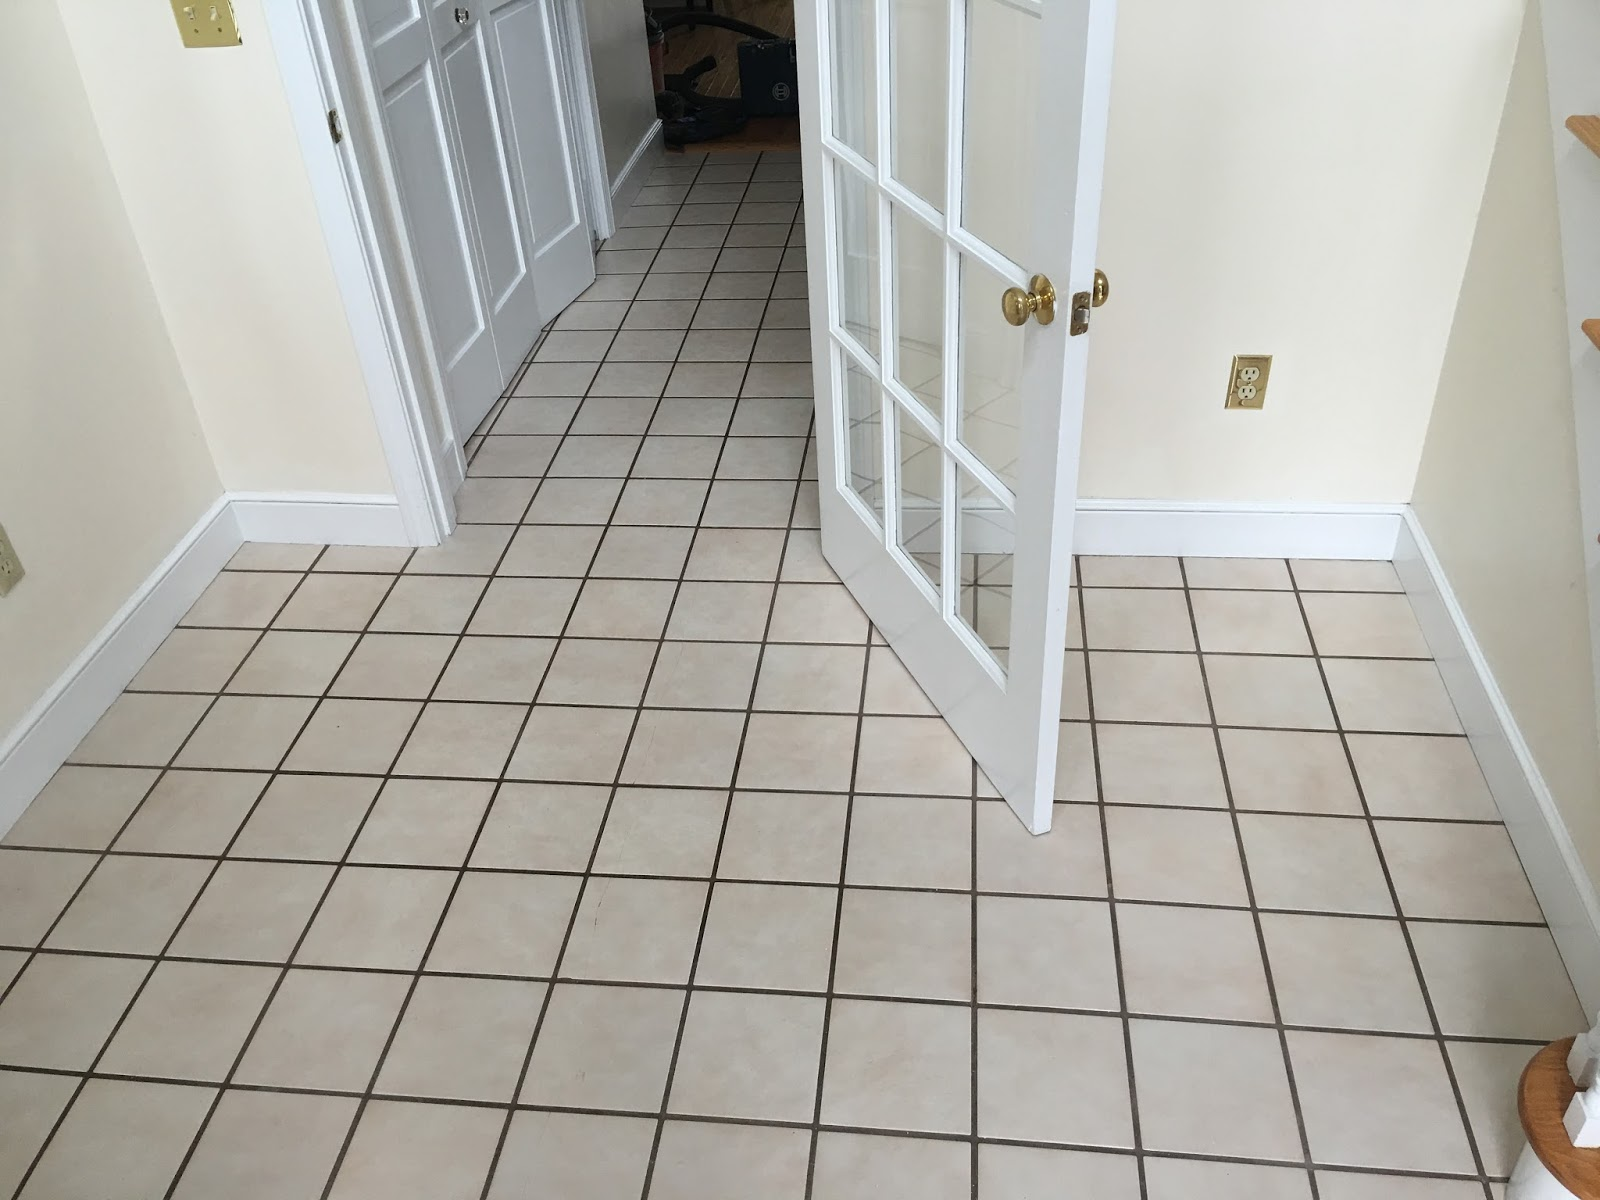 Here you can see the tile material in the foyer and into the hallway.